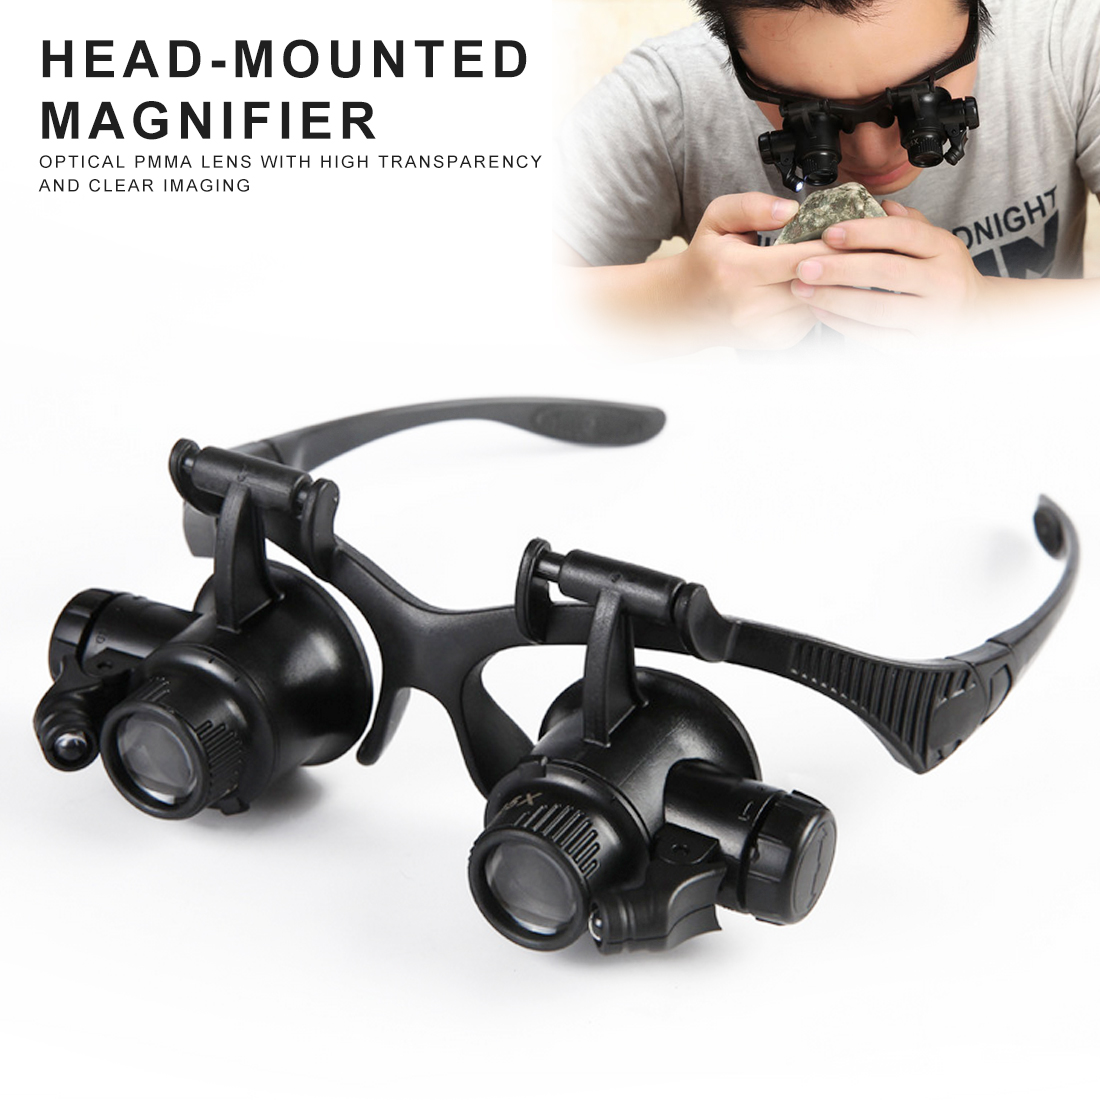 <font><b>LED</b></font> Head-mounted Magnifying <font><b>10X</b></font> <font><b>15X</b></font> <font><b>20X</b></font> <font><b>25X</b></font> Eye Jewelry <font><b>Watch</b></font> <font><b>Repair</b></font> <font><b>Magnifier</b></font> Glasses <font><b>With</b></font> <font><b>2</b></font> <font><b>LED</b></font> Lights Magnifying Glass Lupa image